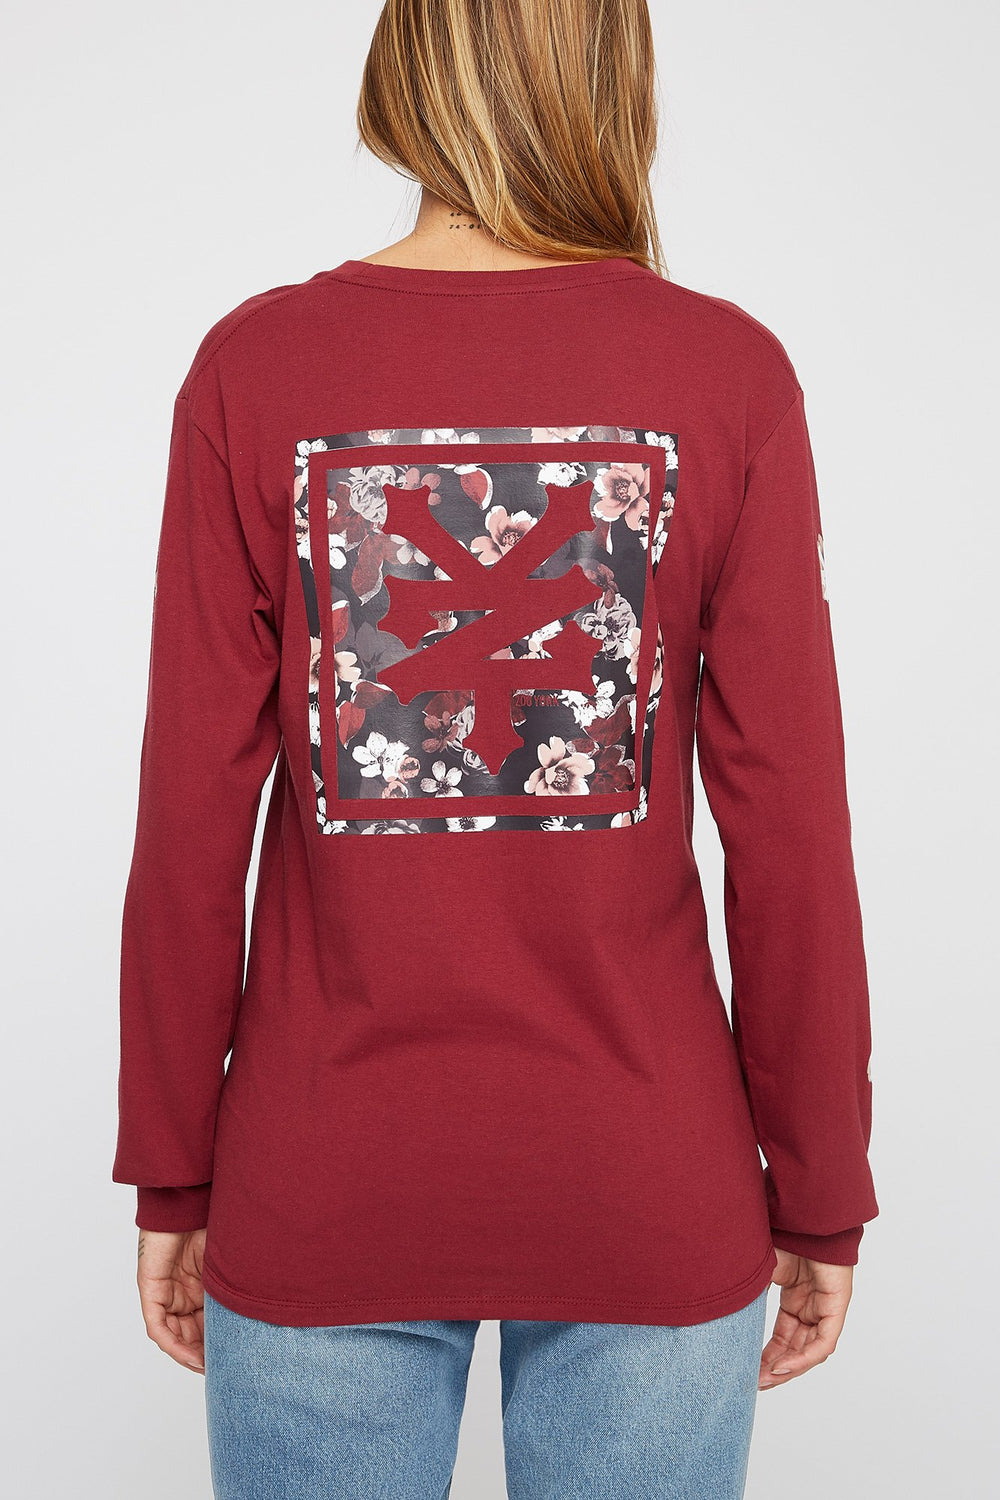 Zoo York Womens Floral Long Sleeve Shirt Burgundy